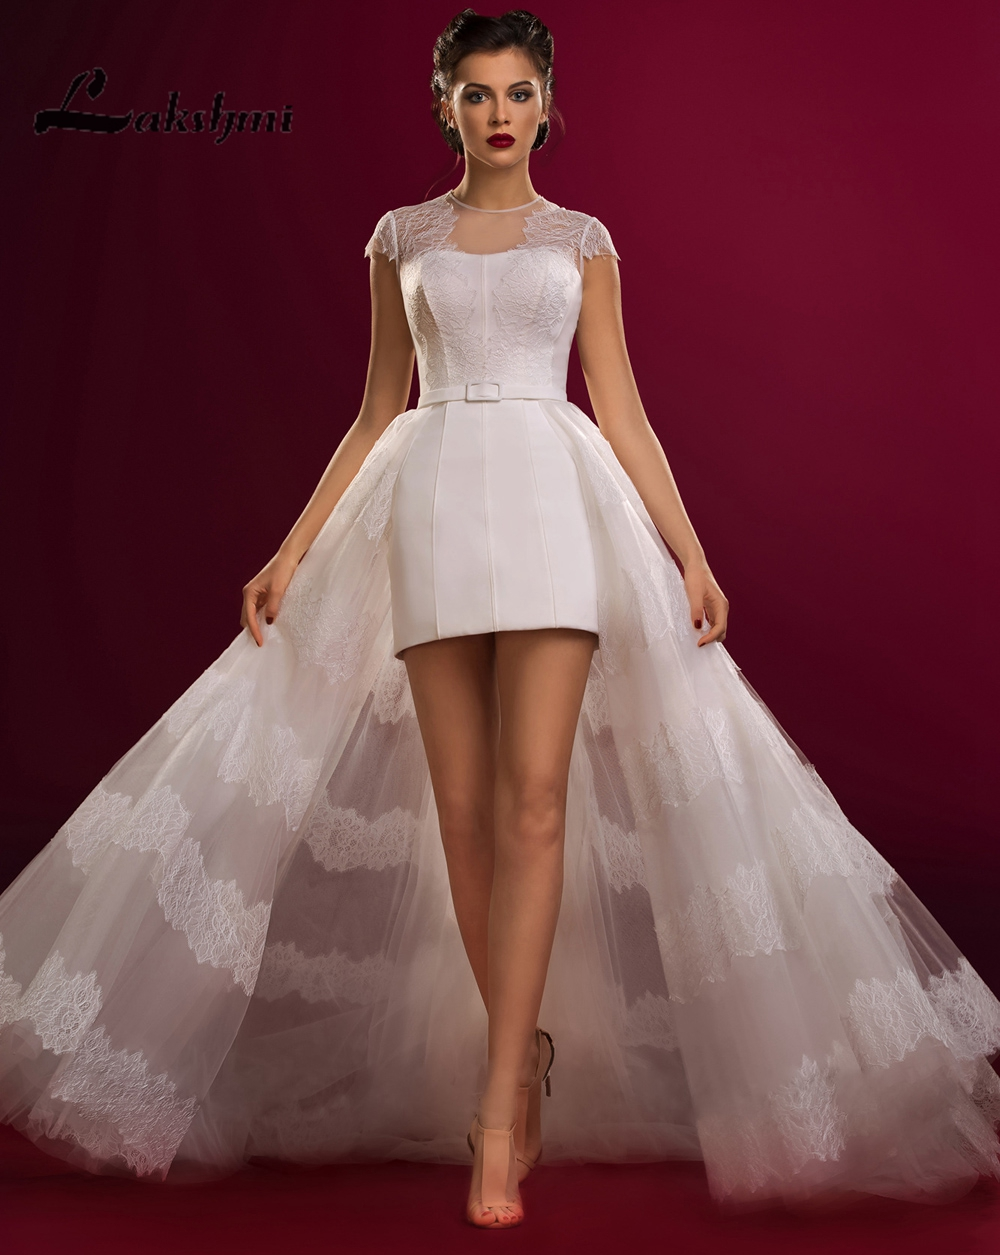 Wedding Mini Dress - Vosoi.com